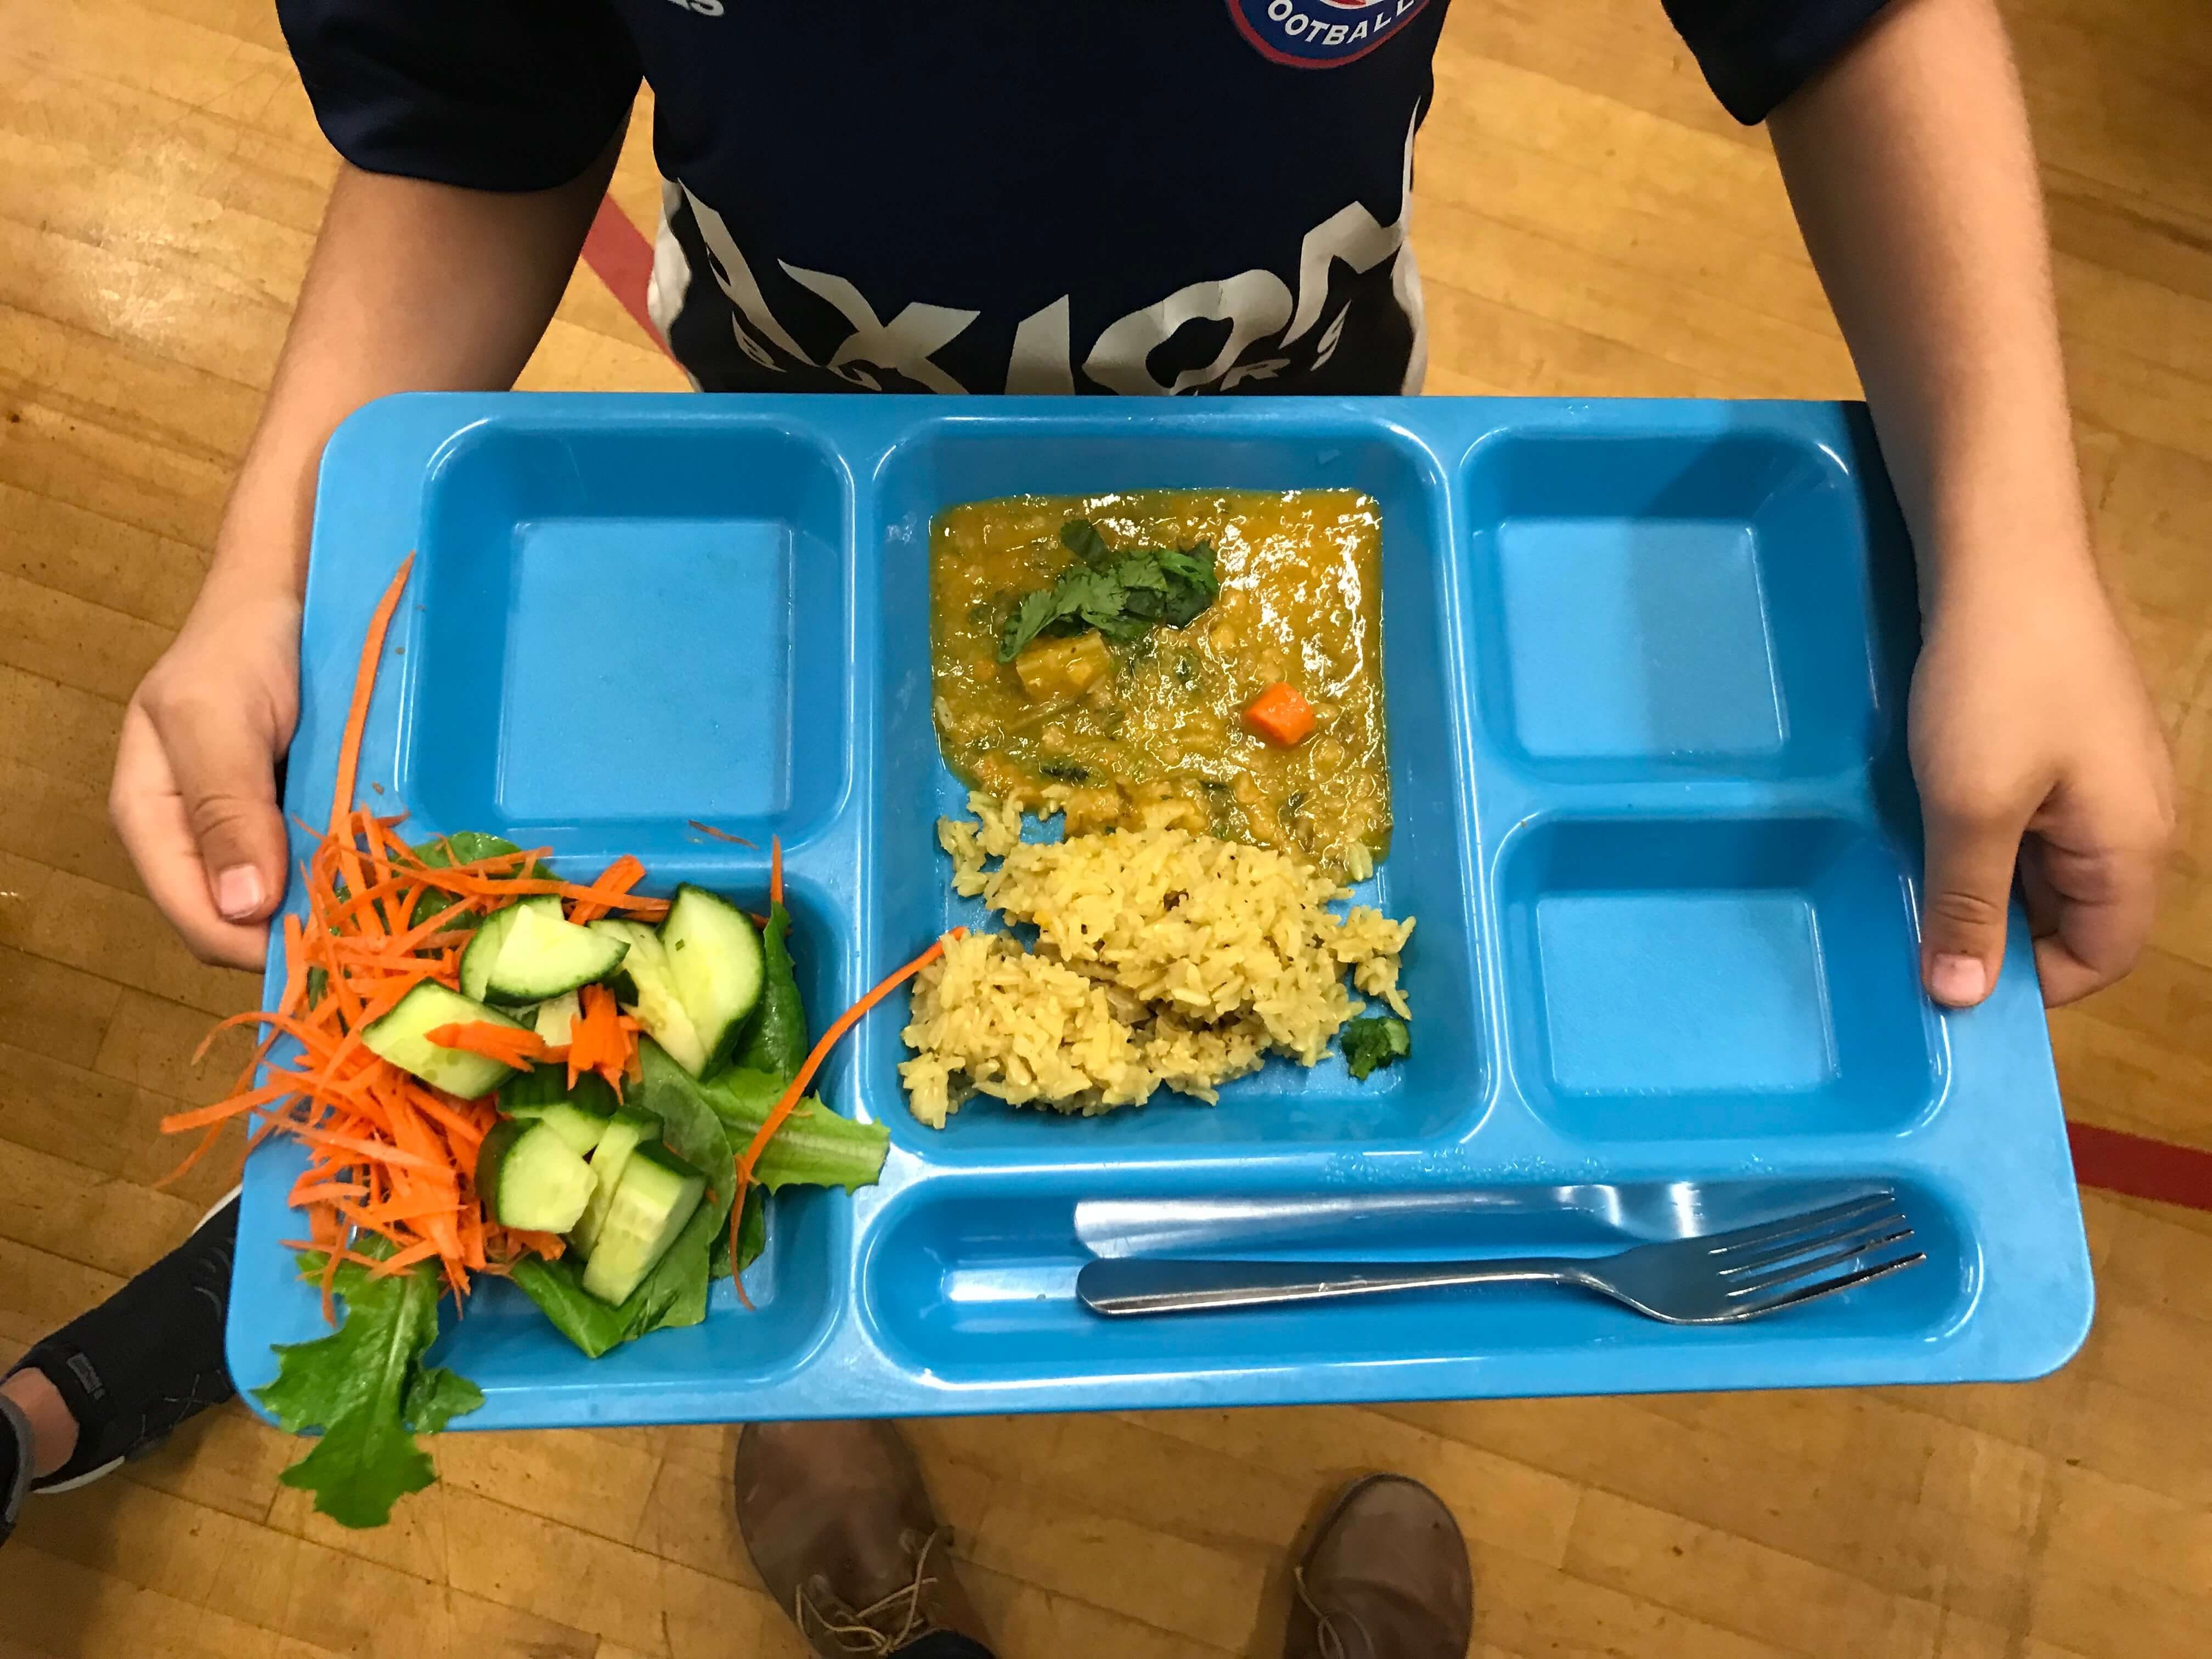 A child holding a lunch tray of food